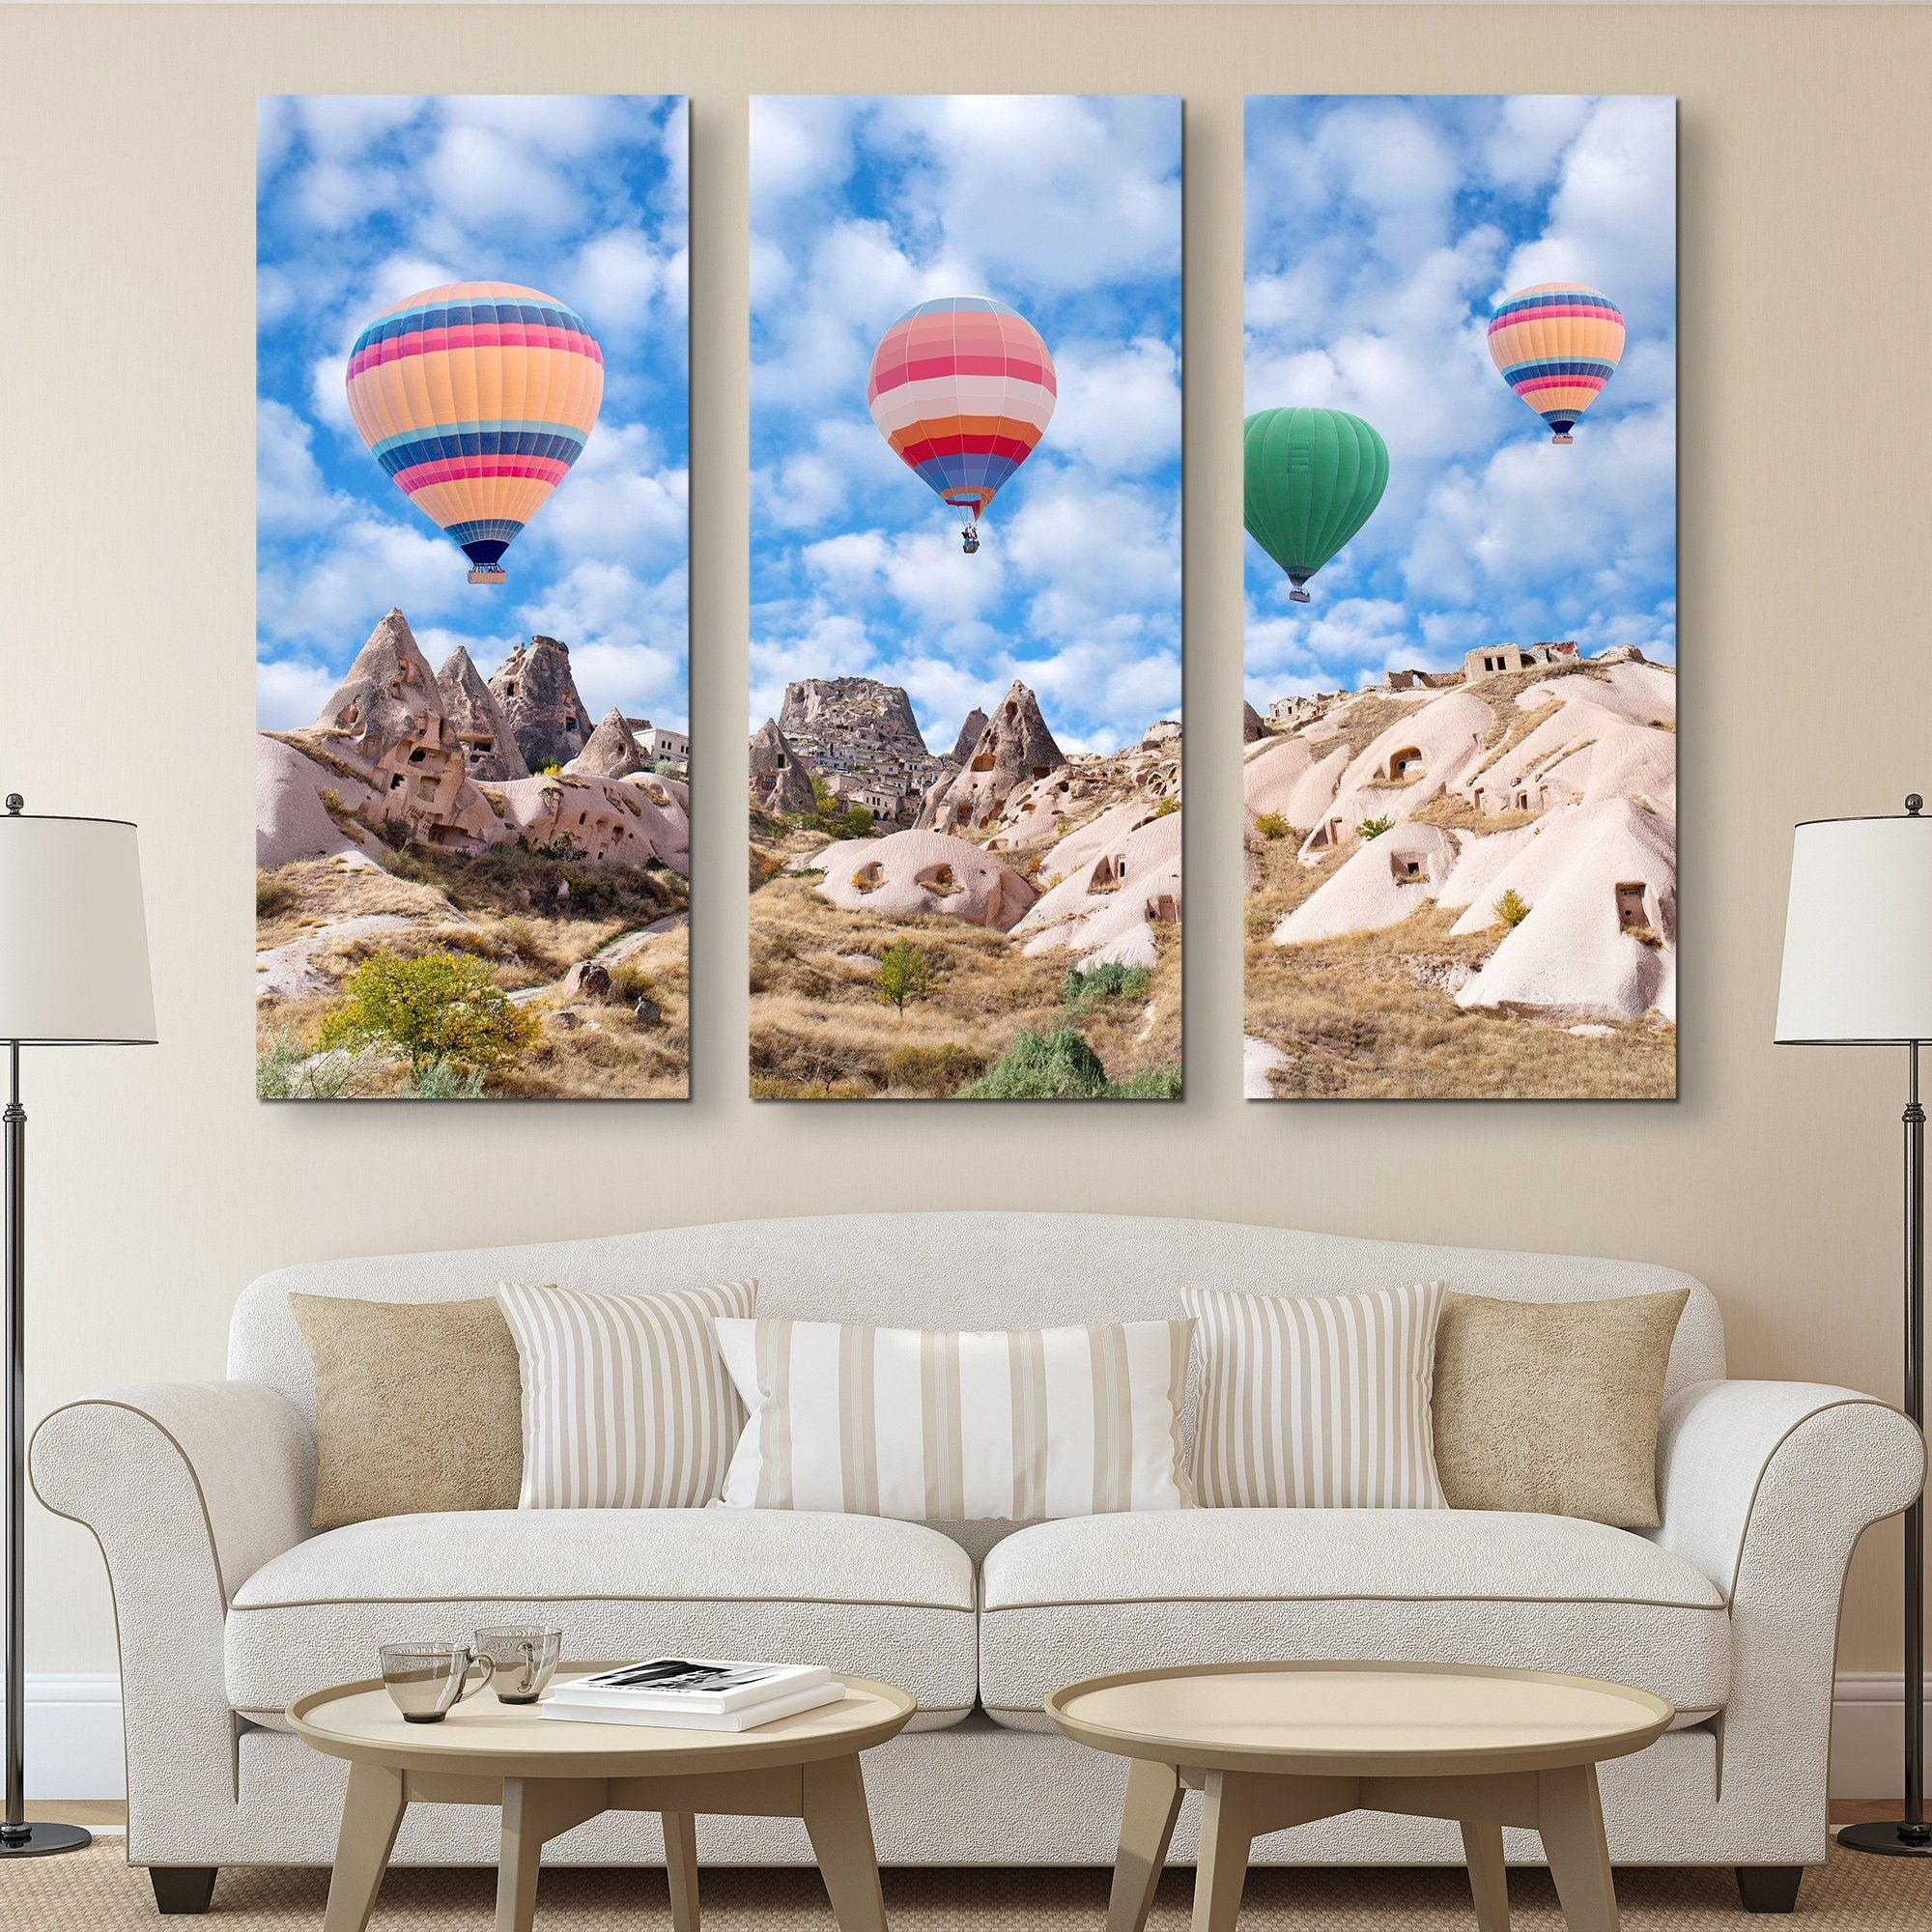 3 piece Colorful Balloons of Cappadocia wall art